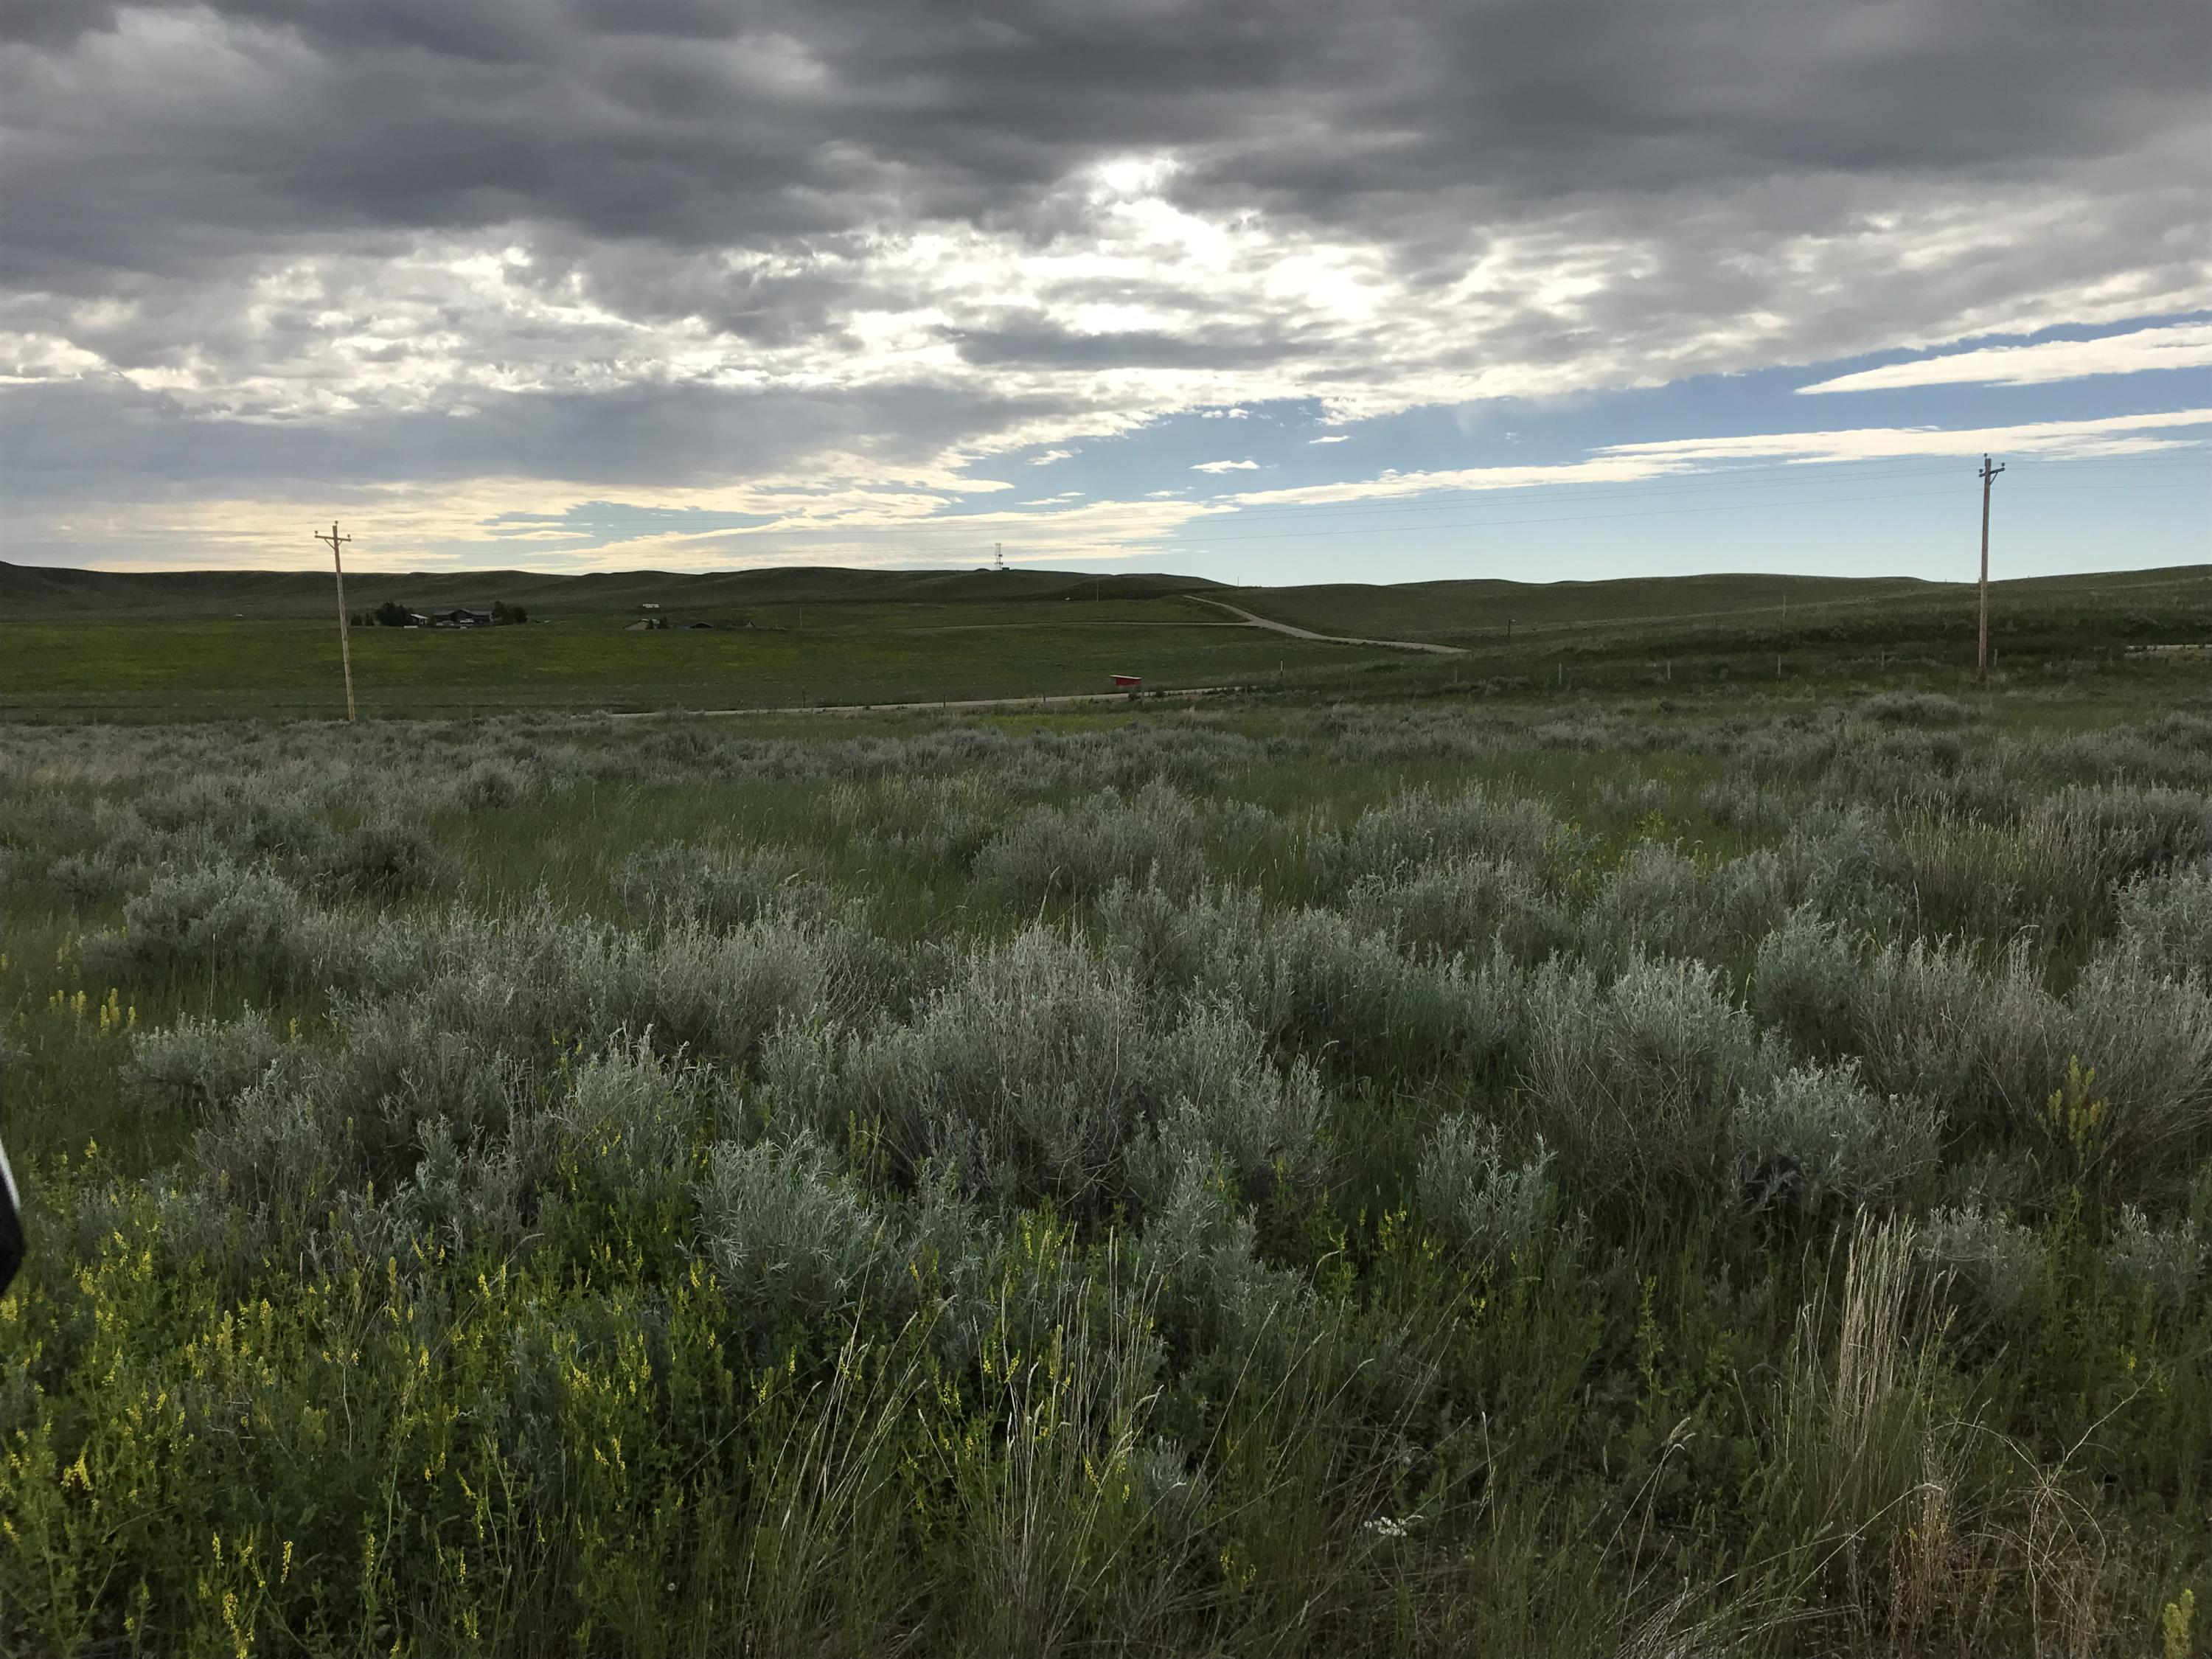 Lot 10 TBD, Buffalo, Wyoming 82834, ,Building Site,For Sale,TBD,17-706